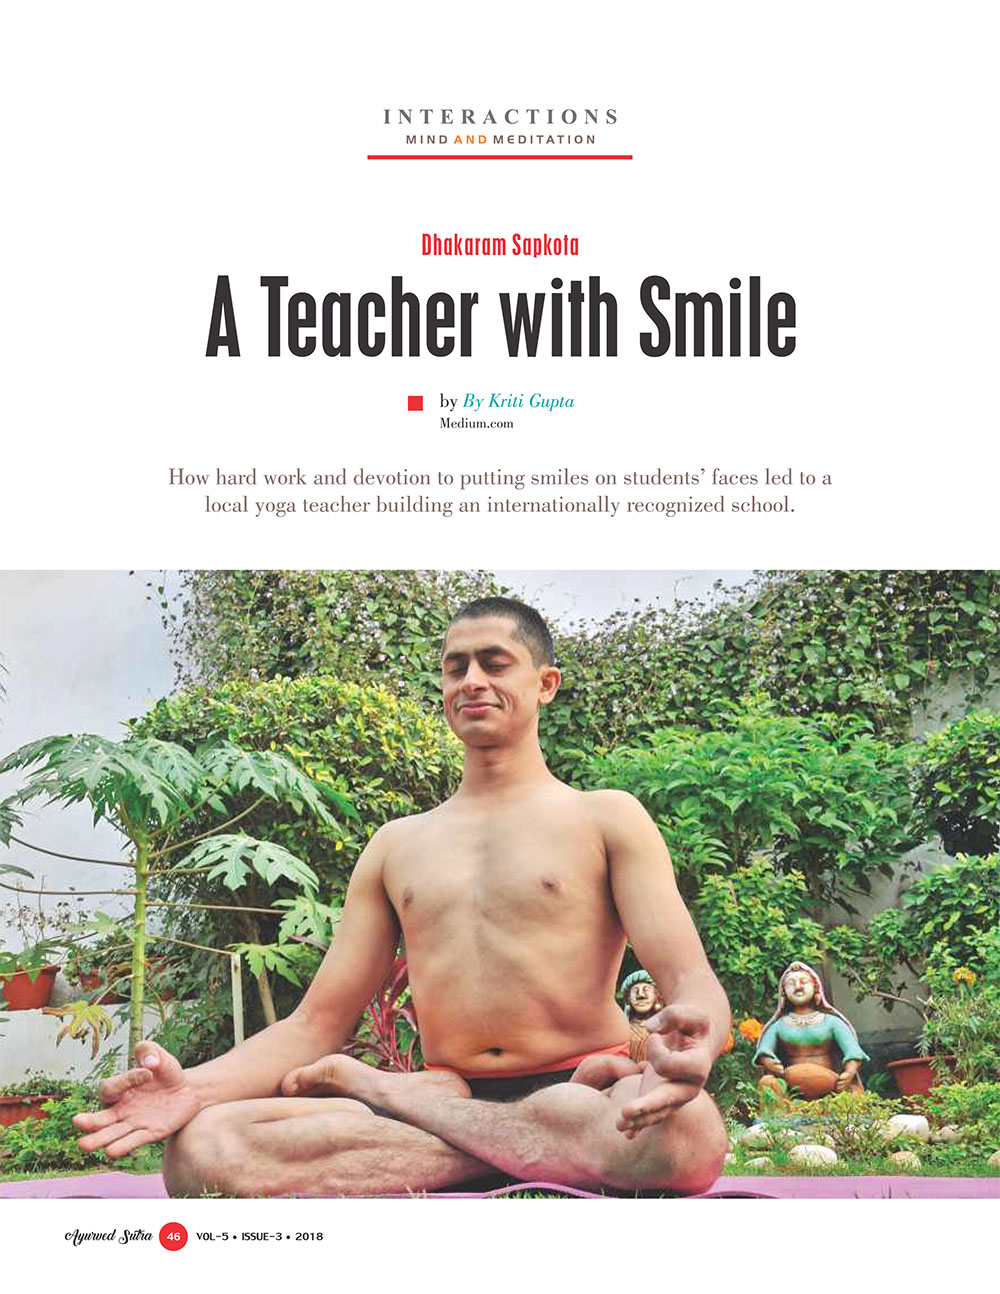 Ayurvedsutra Vol 05 issue 03 48 - Dhakaram Sapkota: A Teacher with Smile